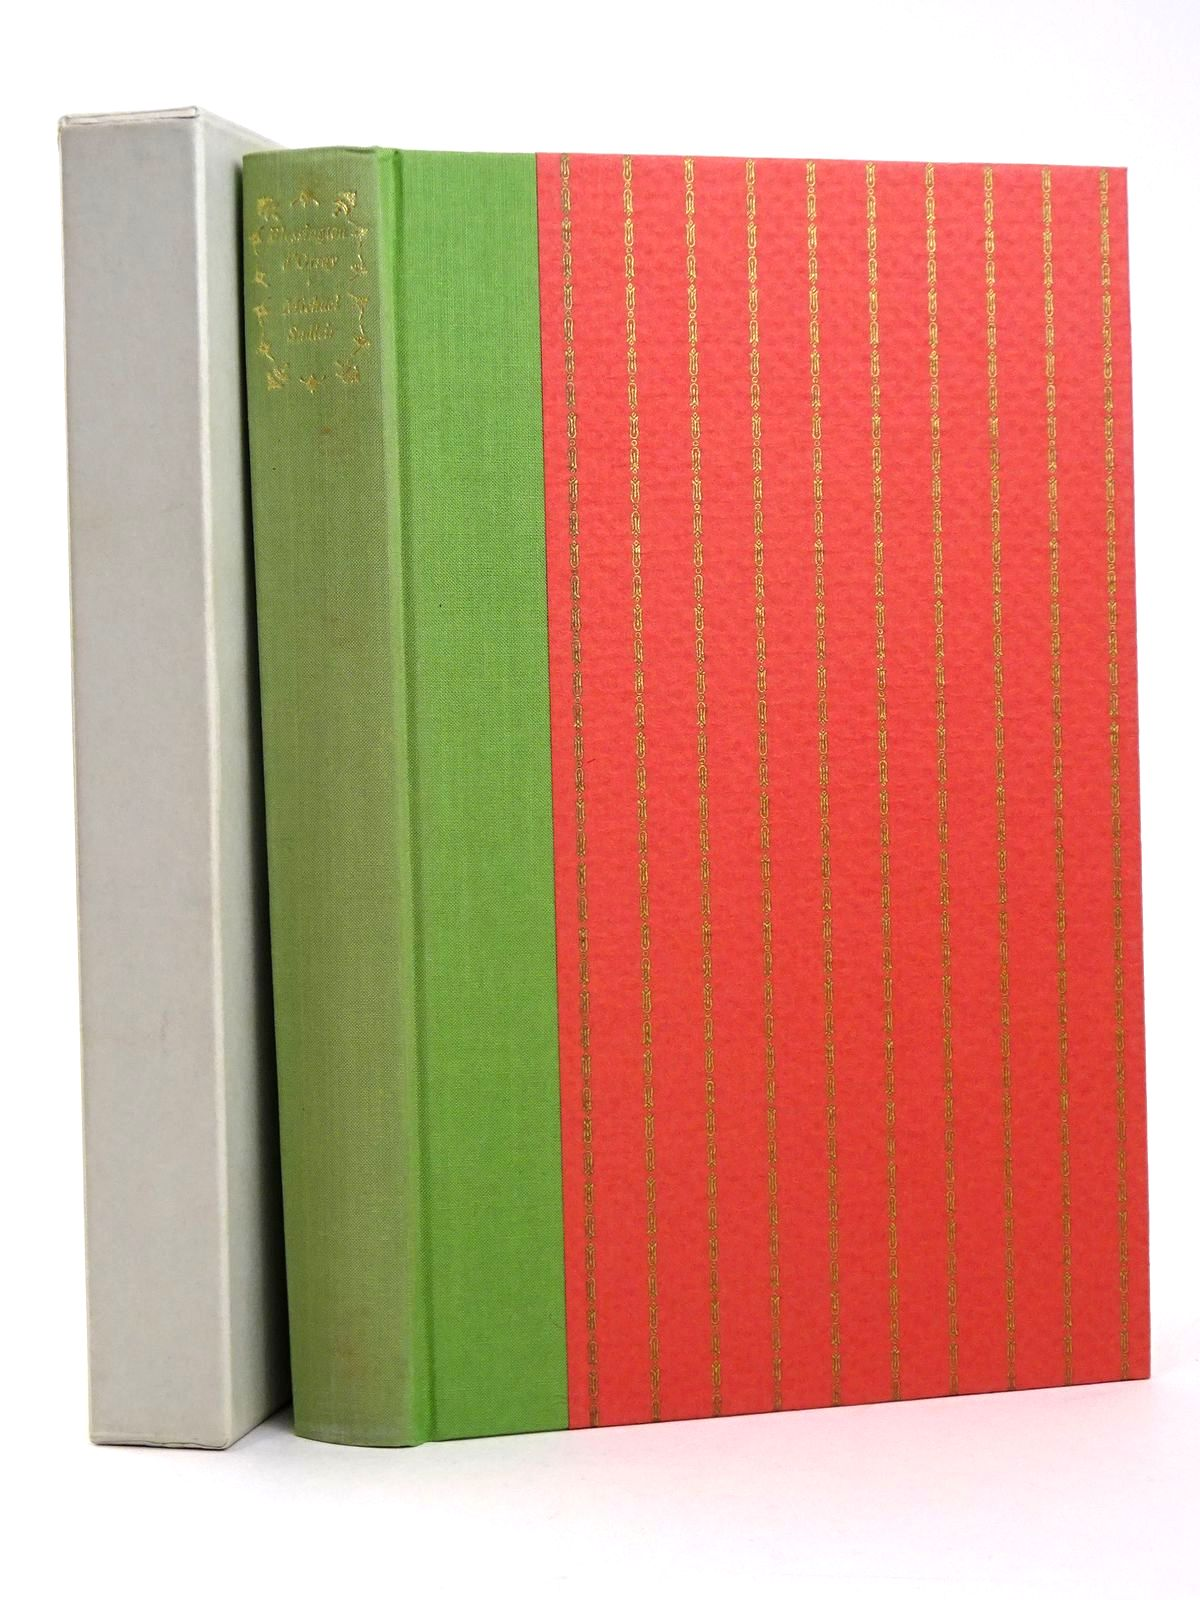 Photo of BLESSINGTON-D'ORSAY: A MASQUERADE written by Sadleir, Michael published by Folio Society (STOCK CODE: 1818505)  for sale by Stella & Rose's Books